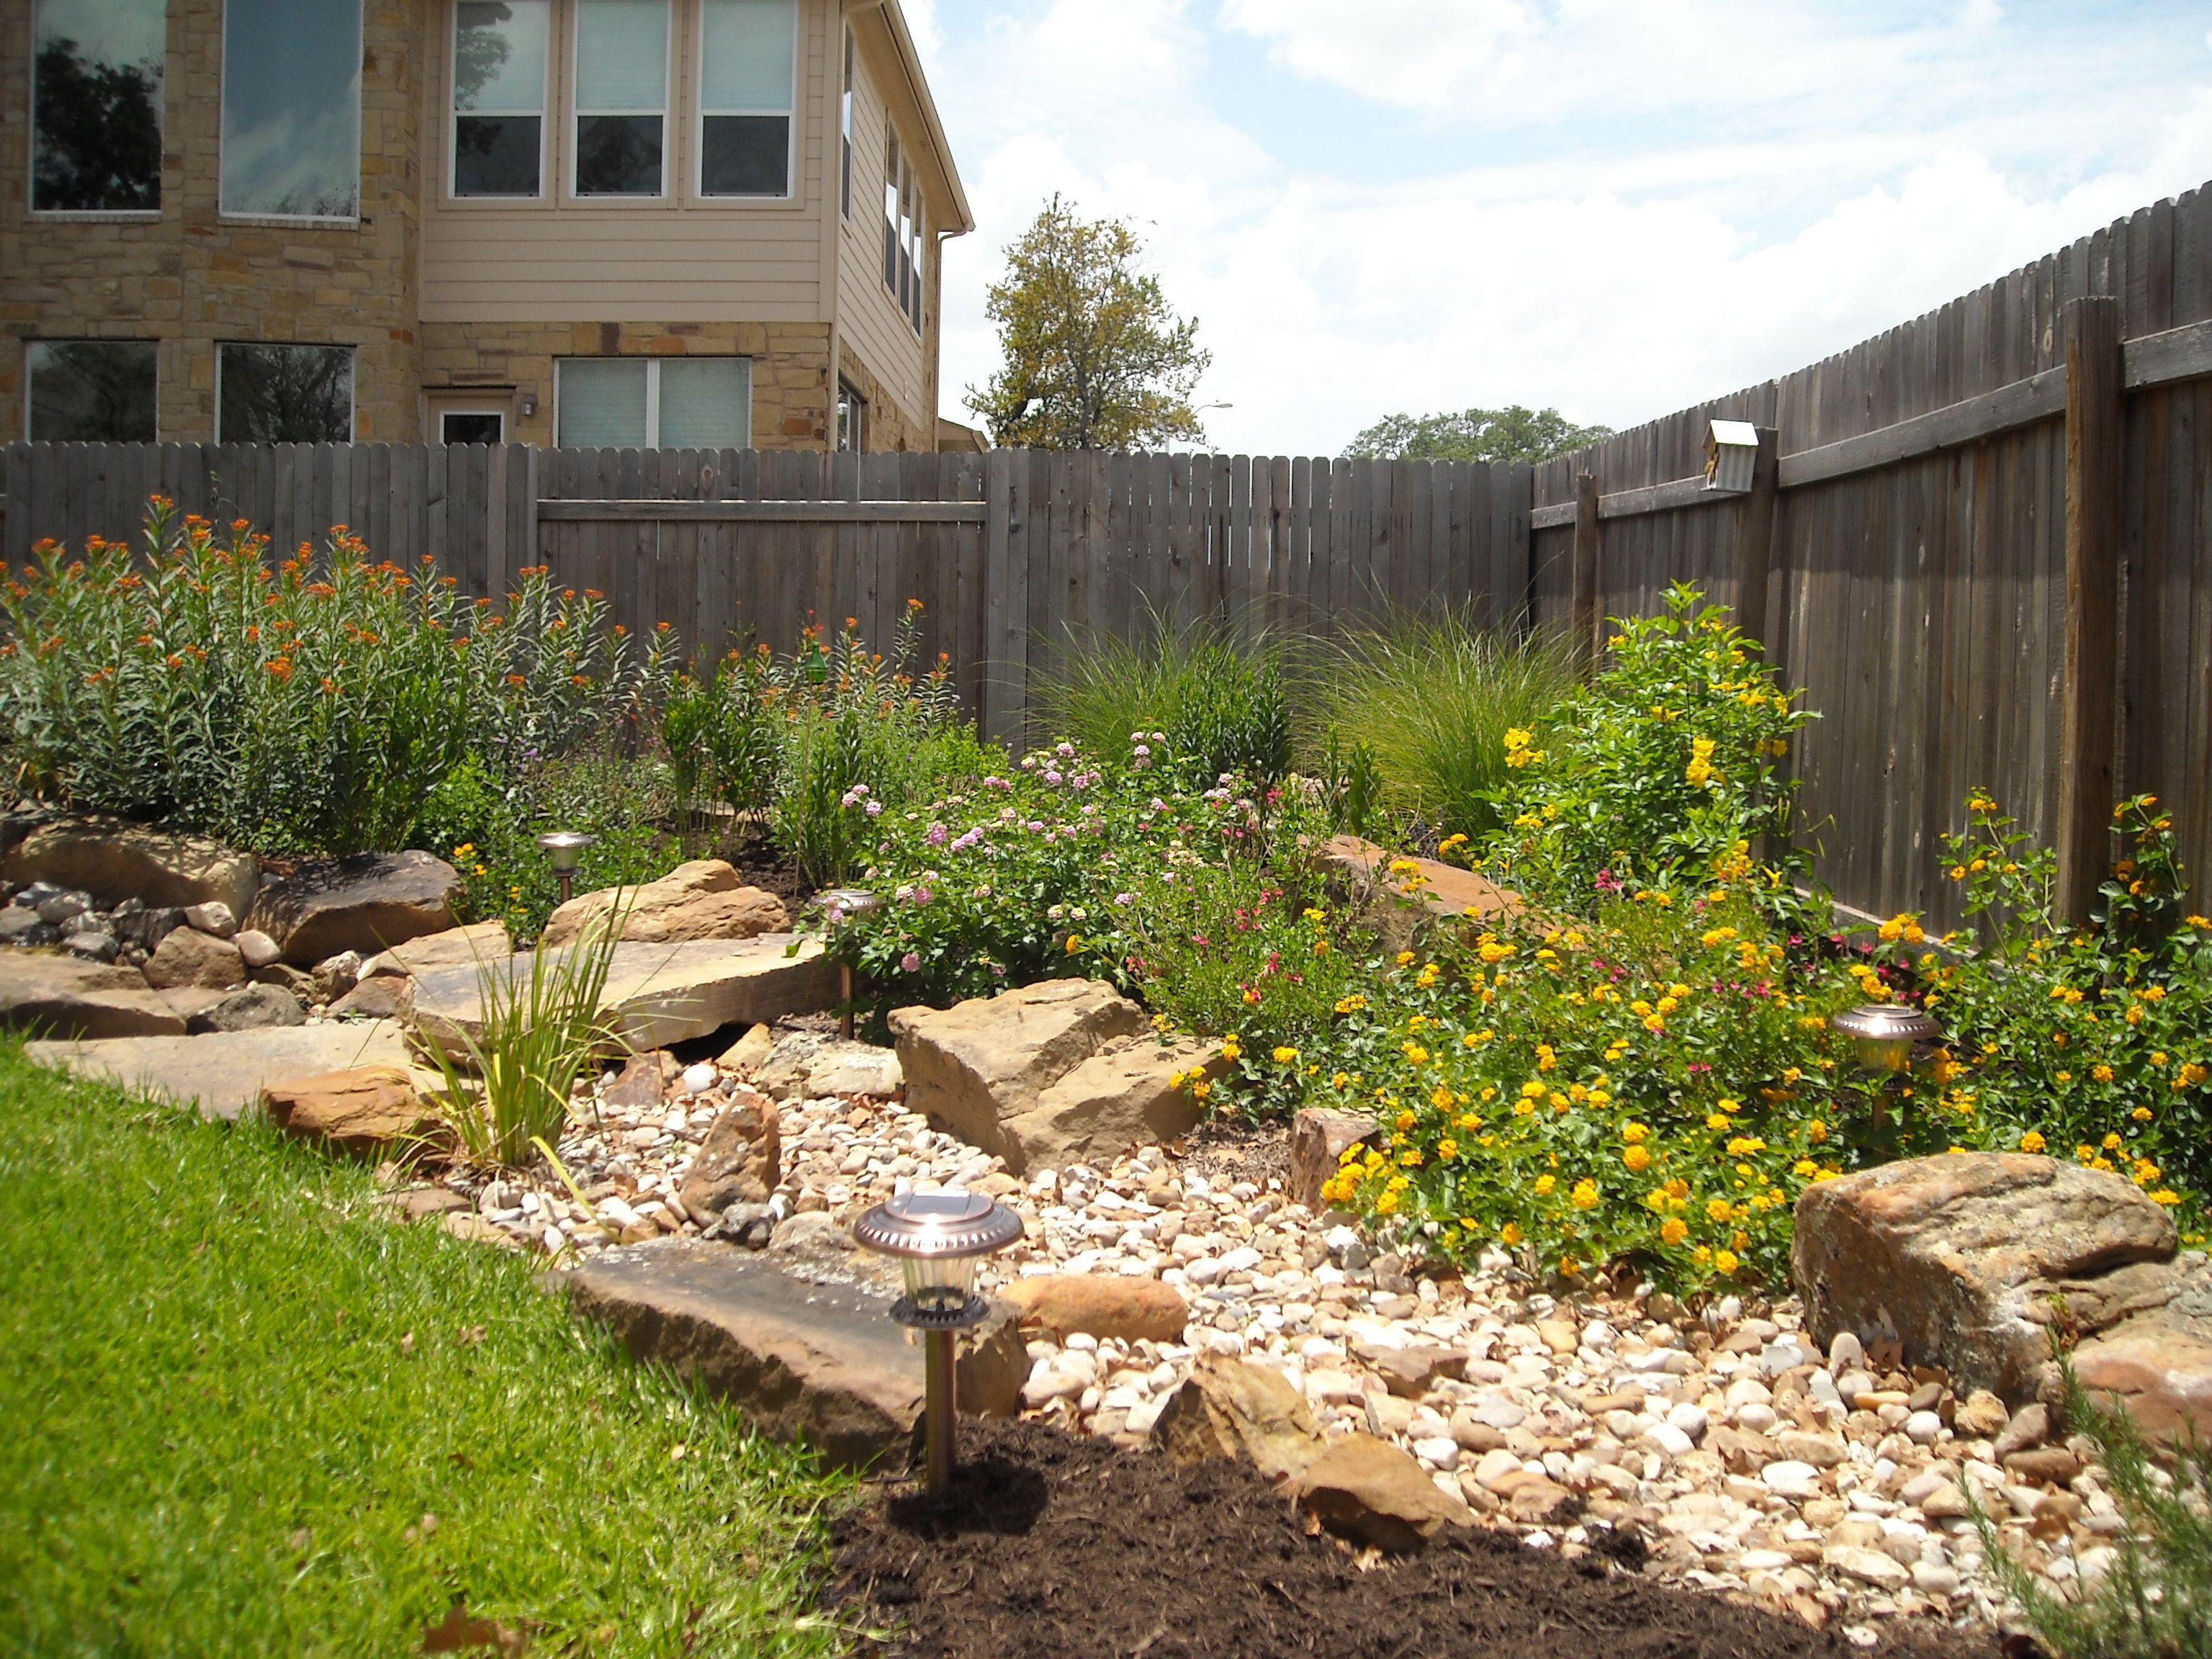 Water feature disappearing into a dry creek bed with a